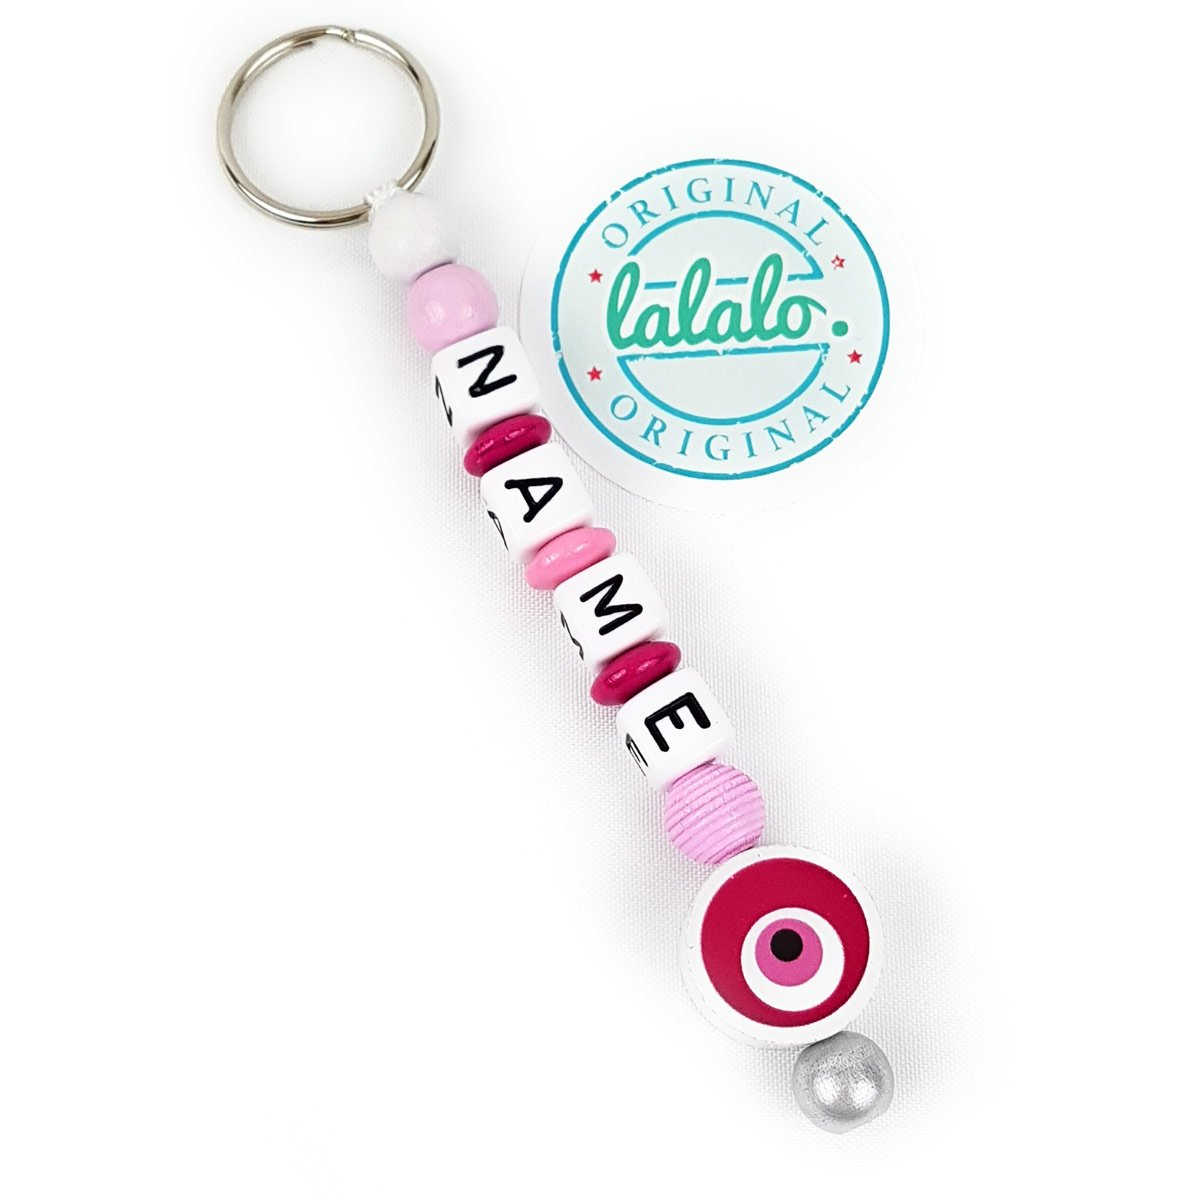 Evil Eye Eye Name Necklace/Gift Tag with Pink   Baby & Child Trailer for Diaper Bag, Nursery or School Bag LALALO LO.400.11